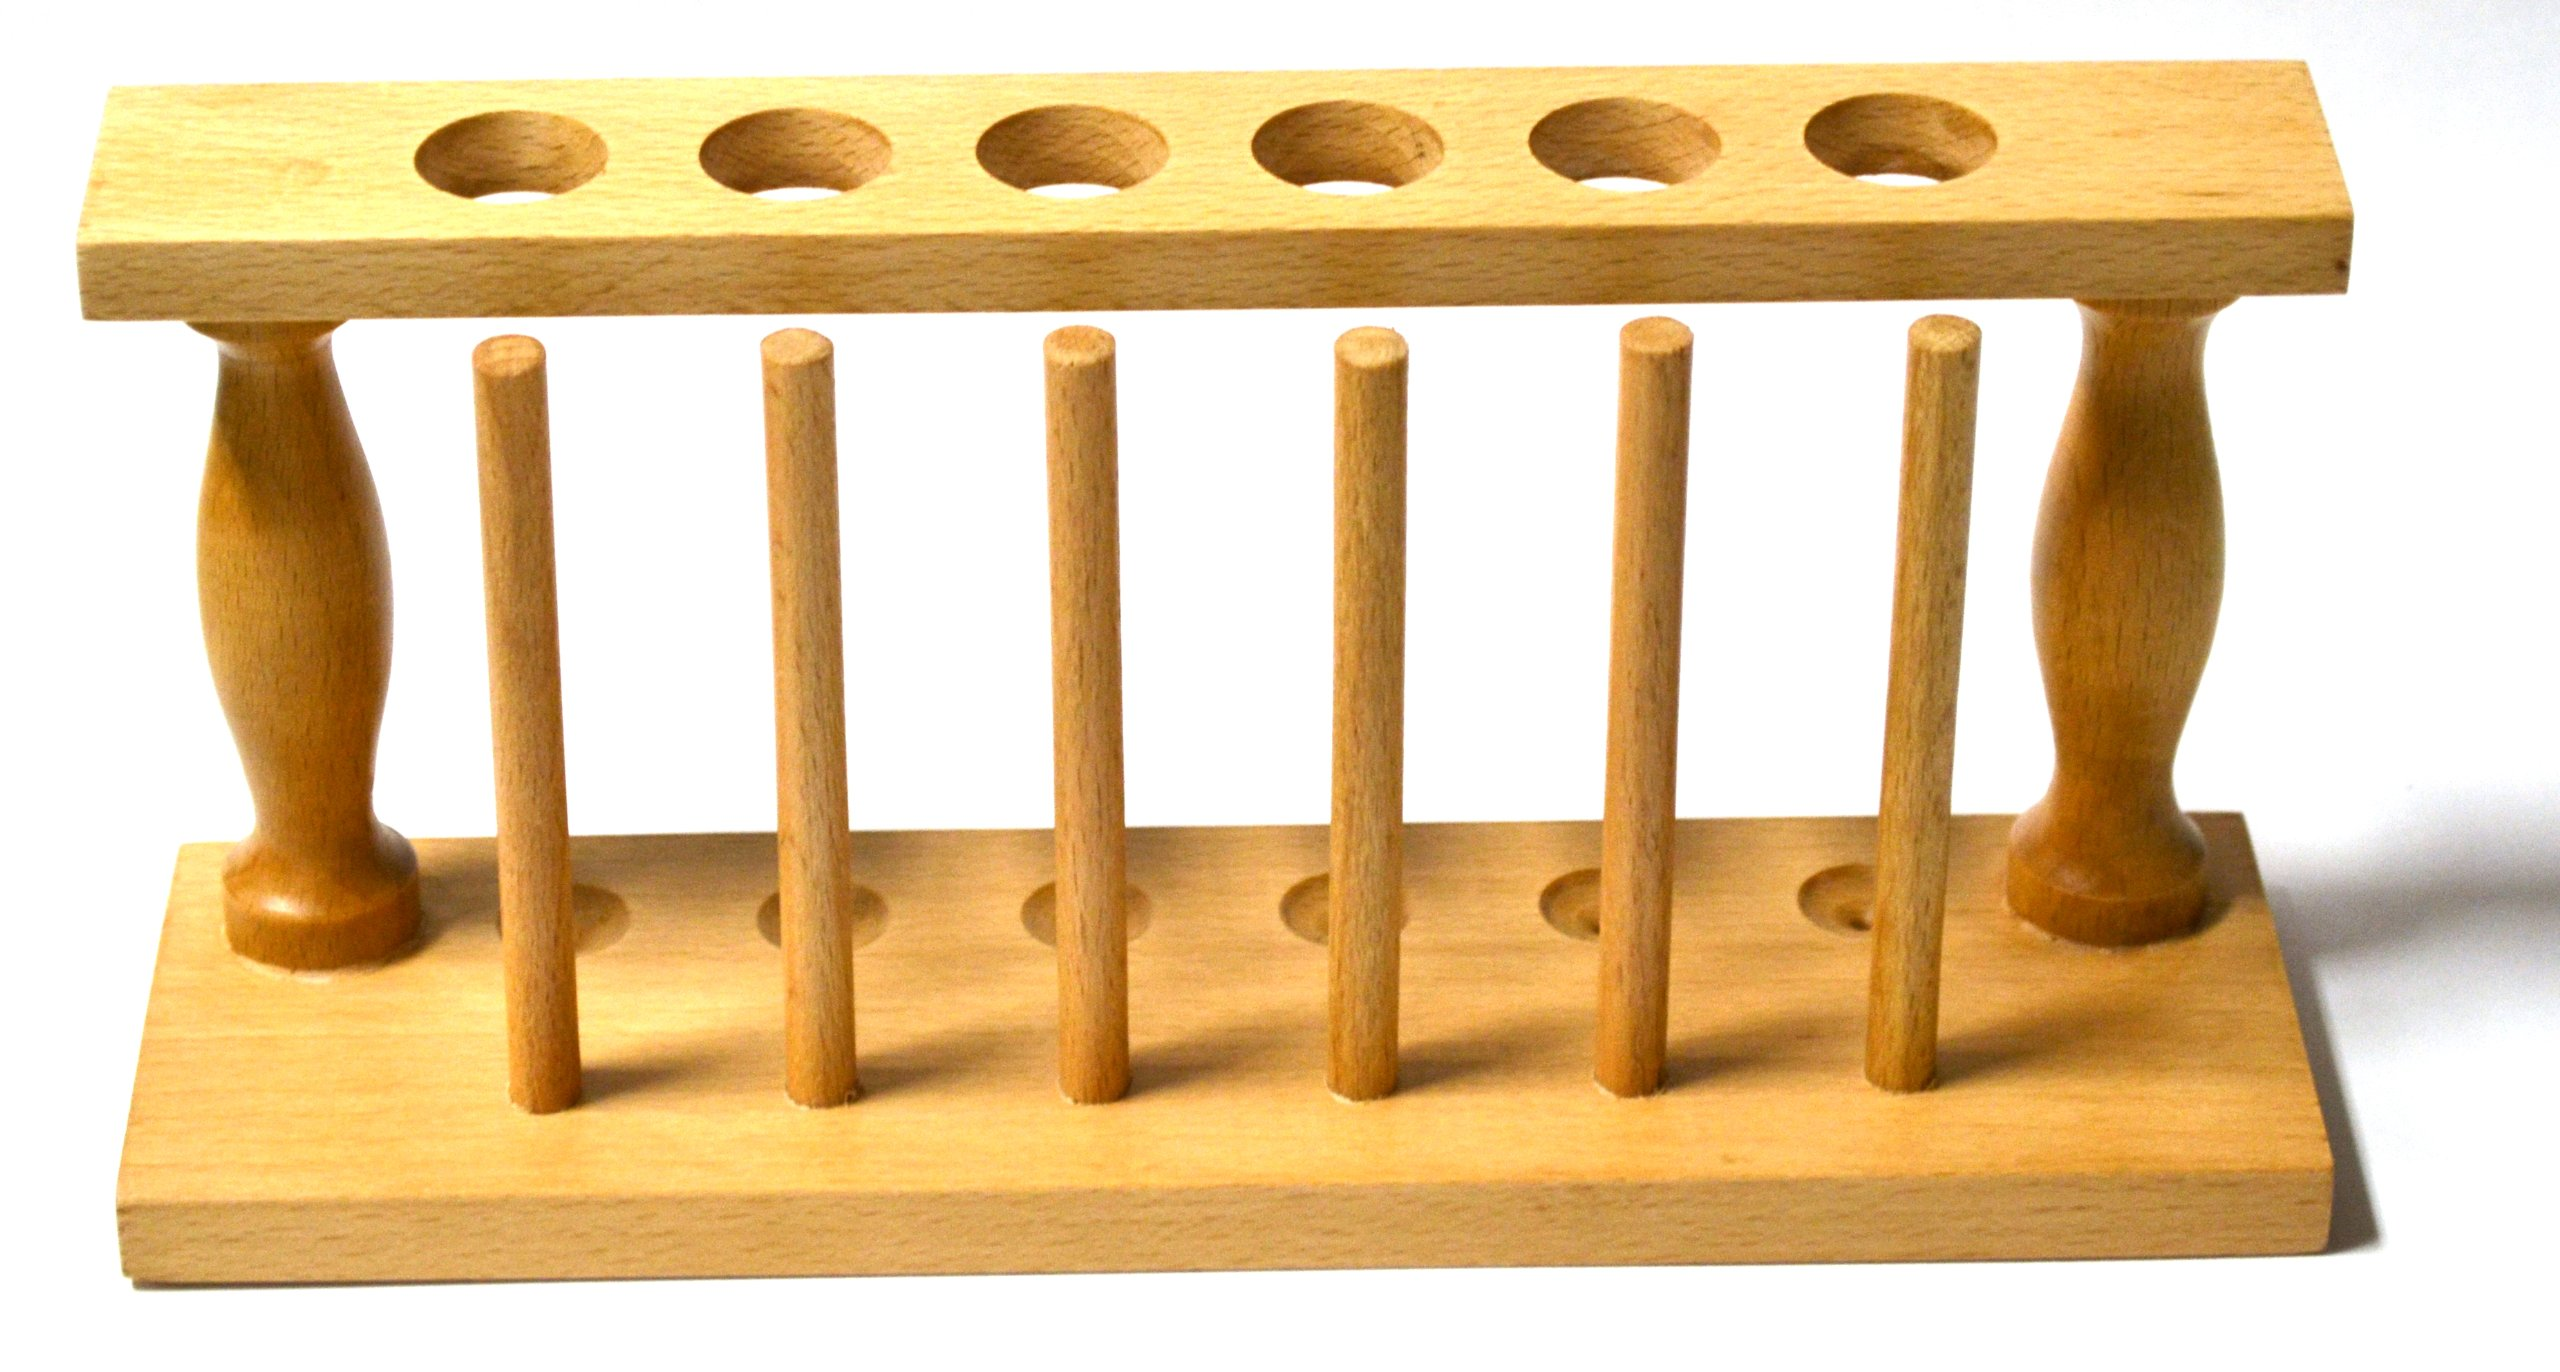 Premium Test Tube Rack, (6) 25mm Holes and (6) Pins - Solid Wood - 9.4'' Long, 3.75'' Tall by EISCO